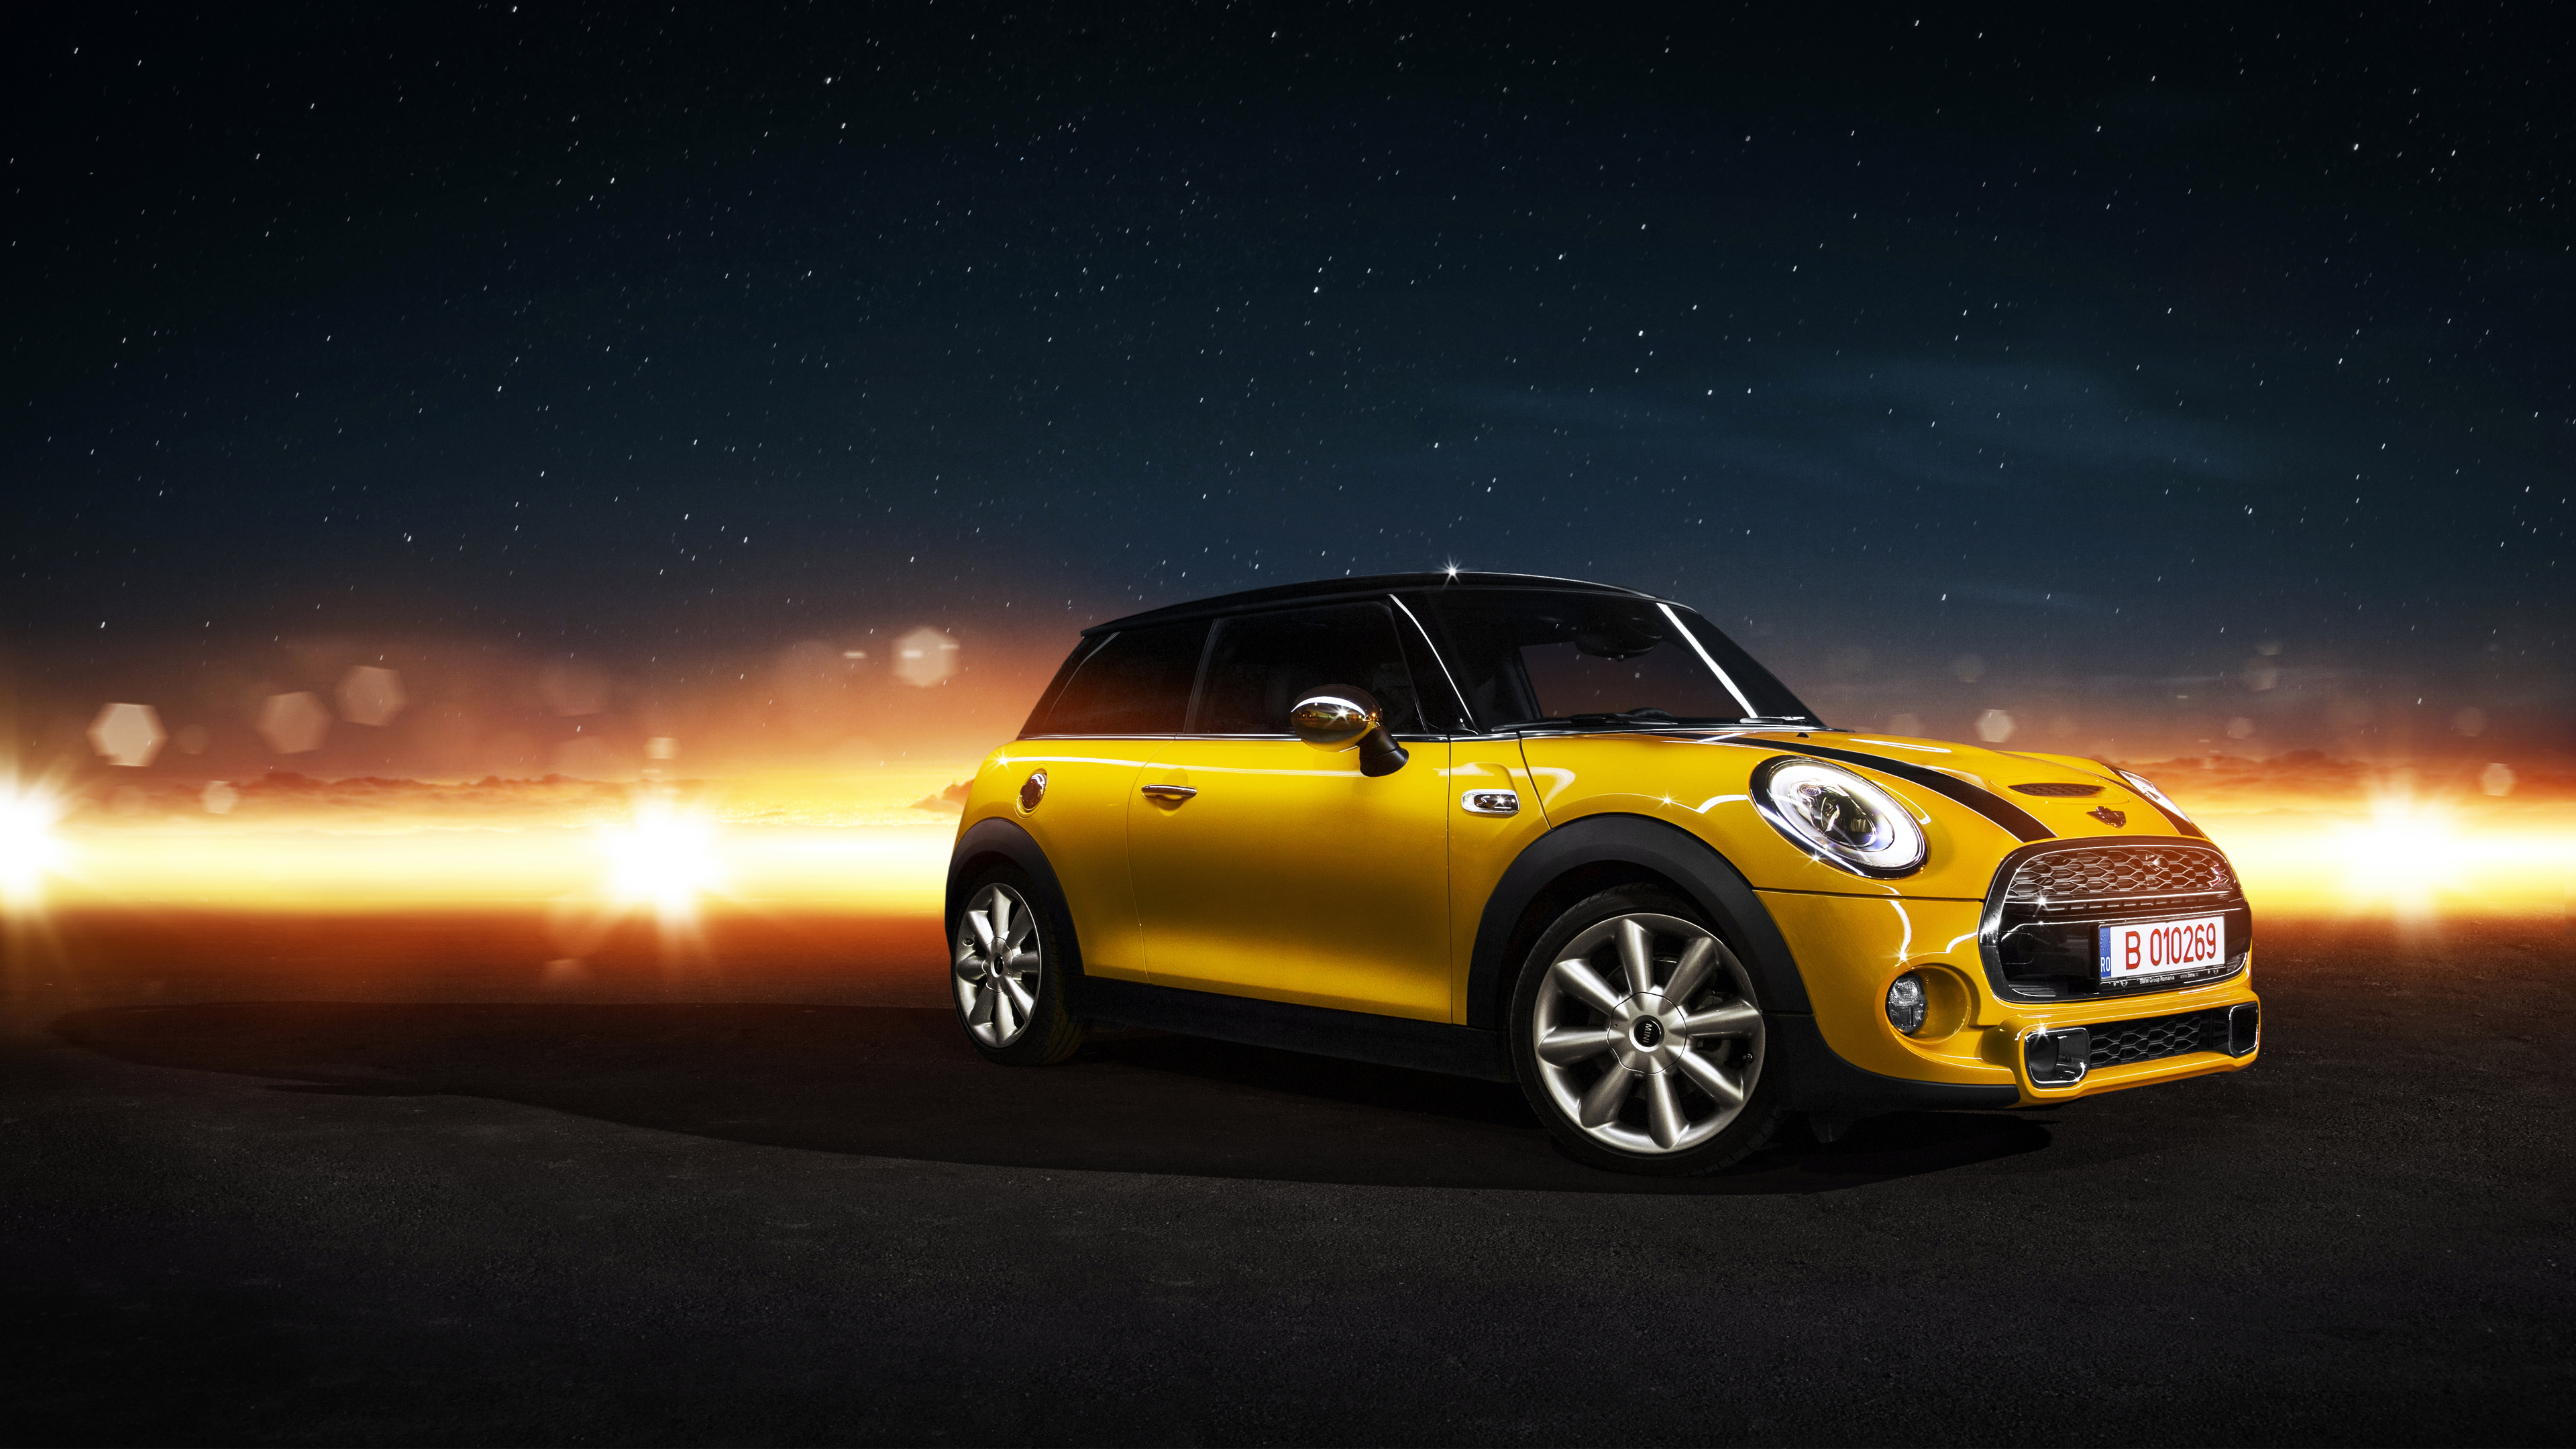 mini cooper s wallpaper | hd car wallpapers